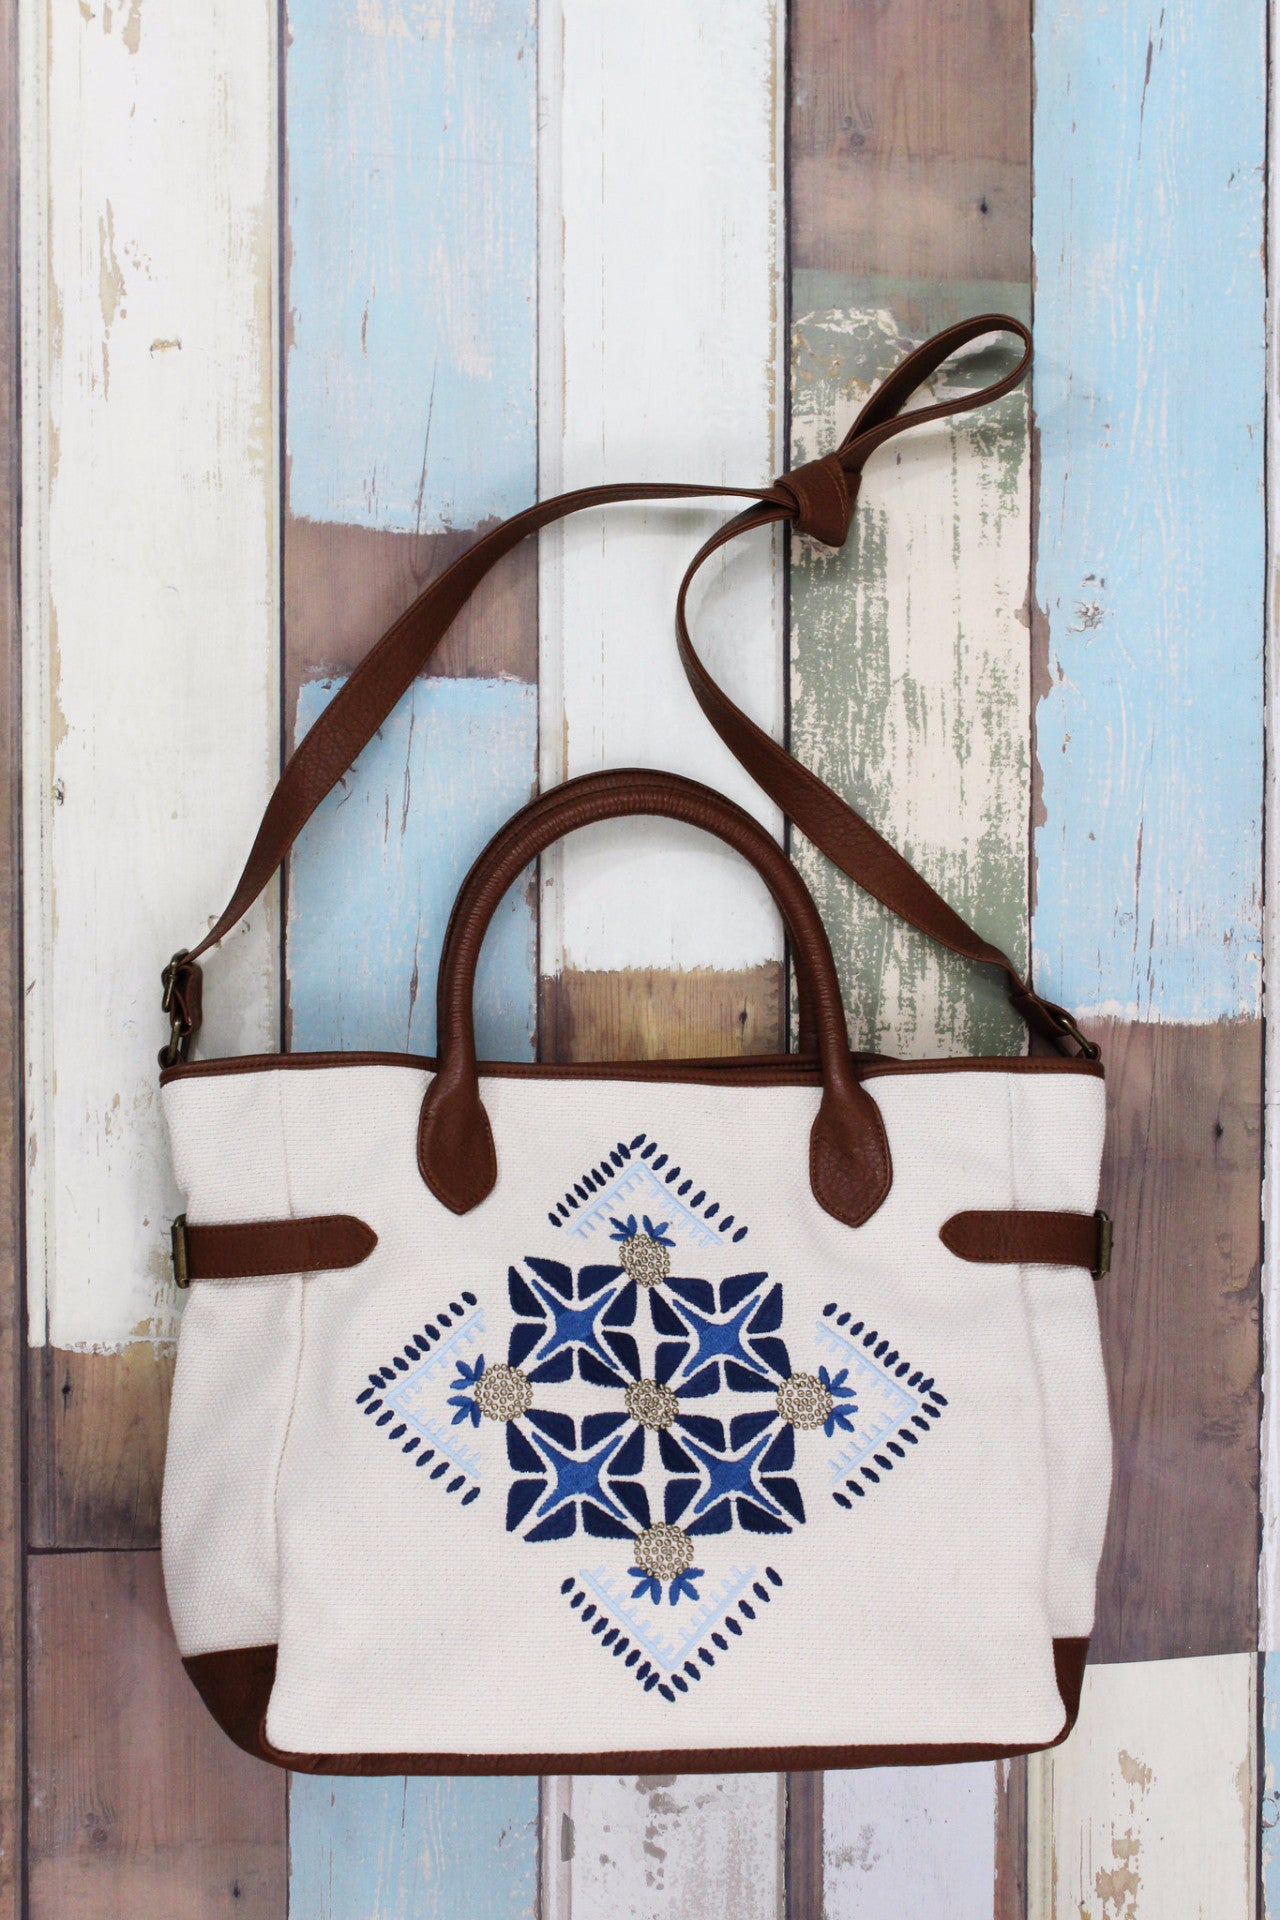 Shades of Cool Tote in Natural Canvas